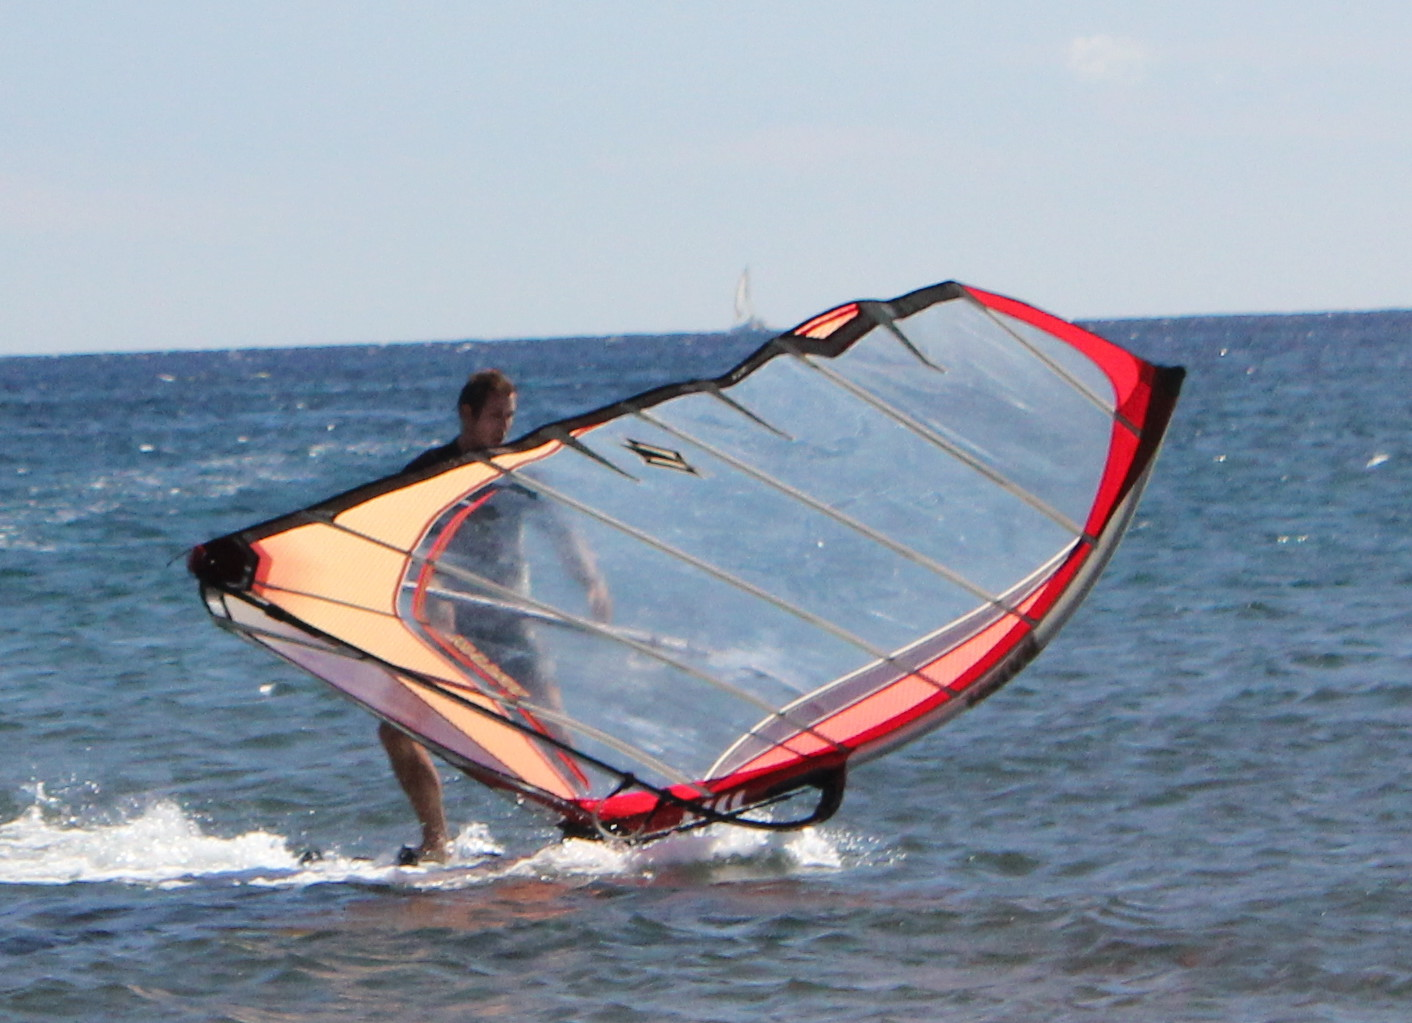 How to Stop a Windsurfer - Drop Sail